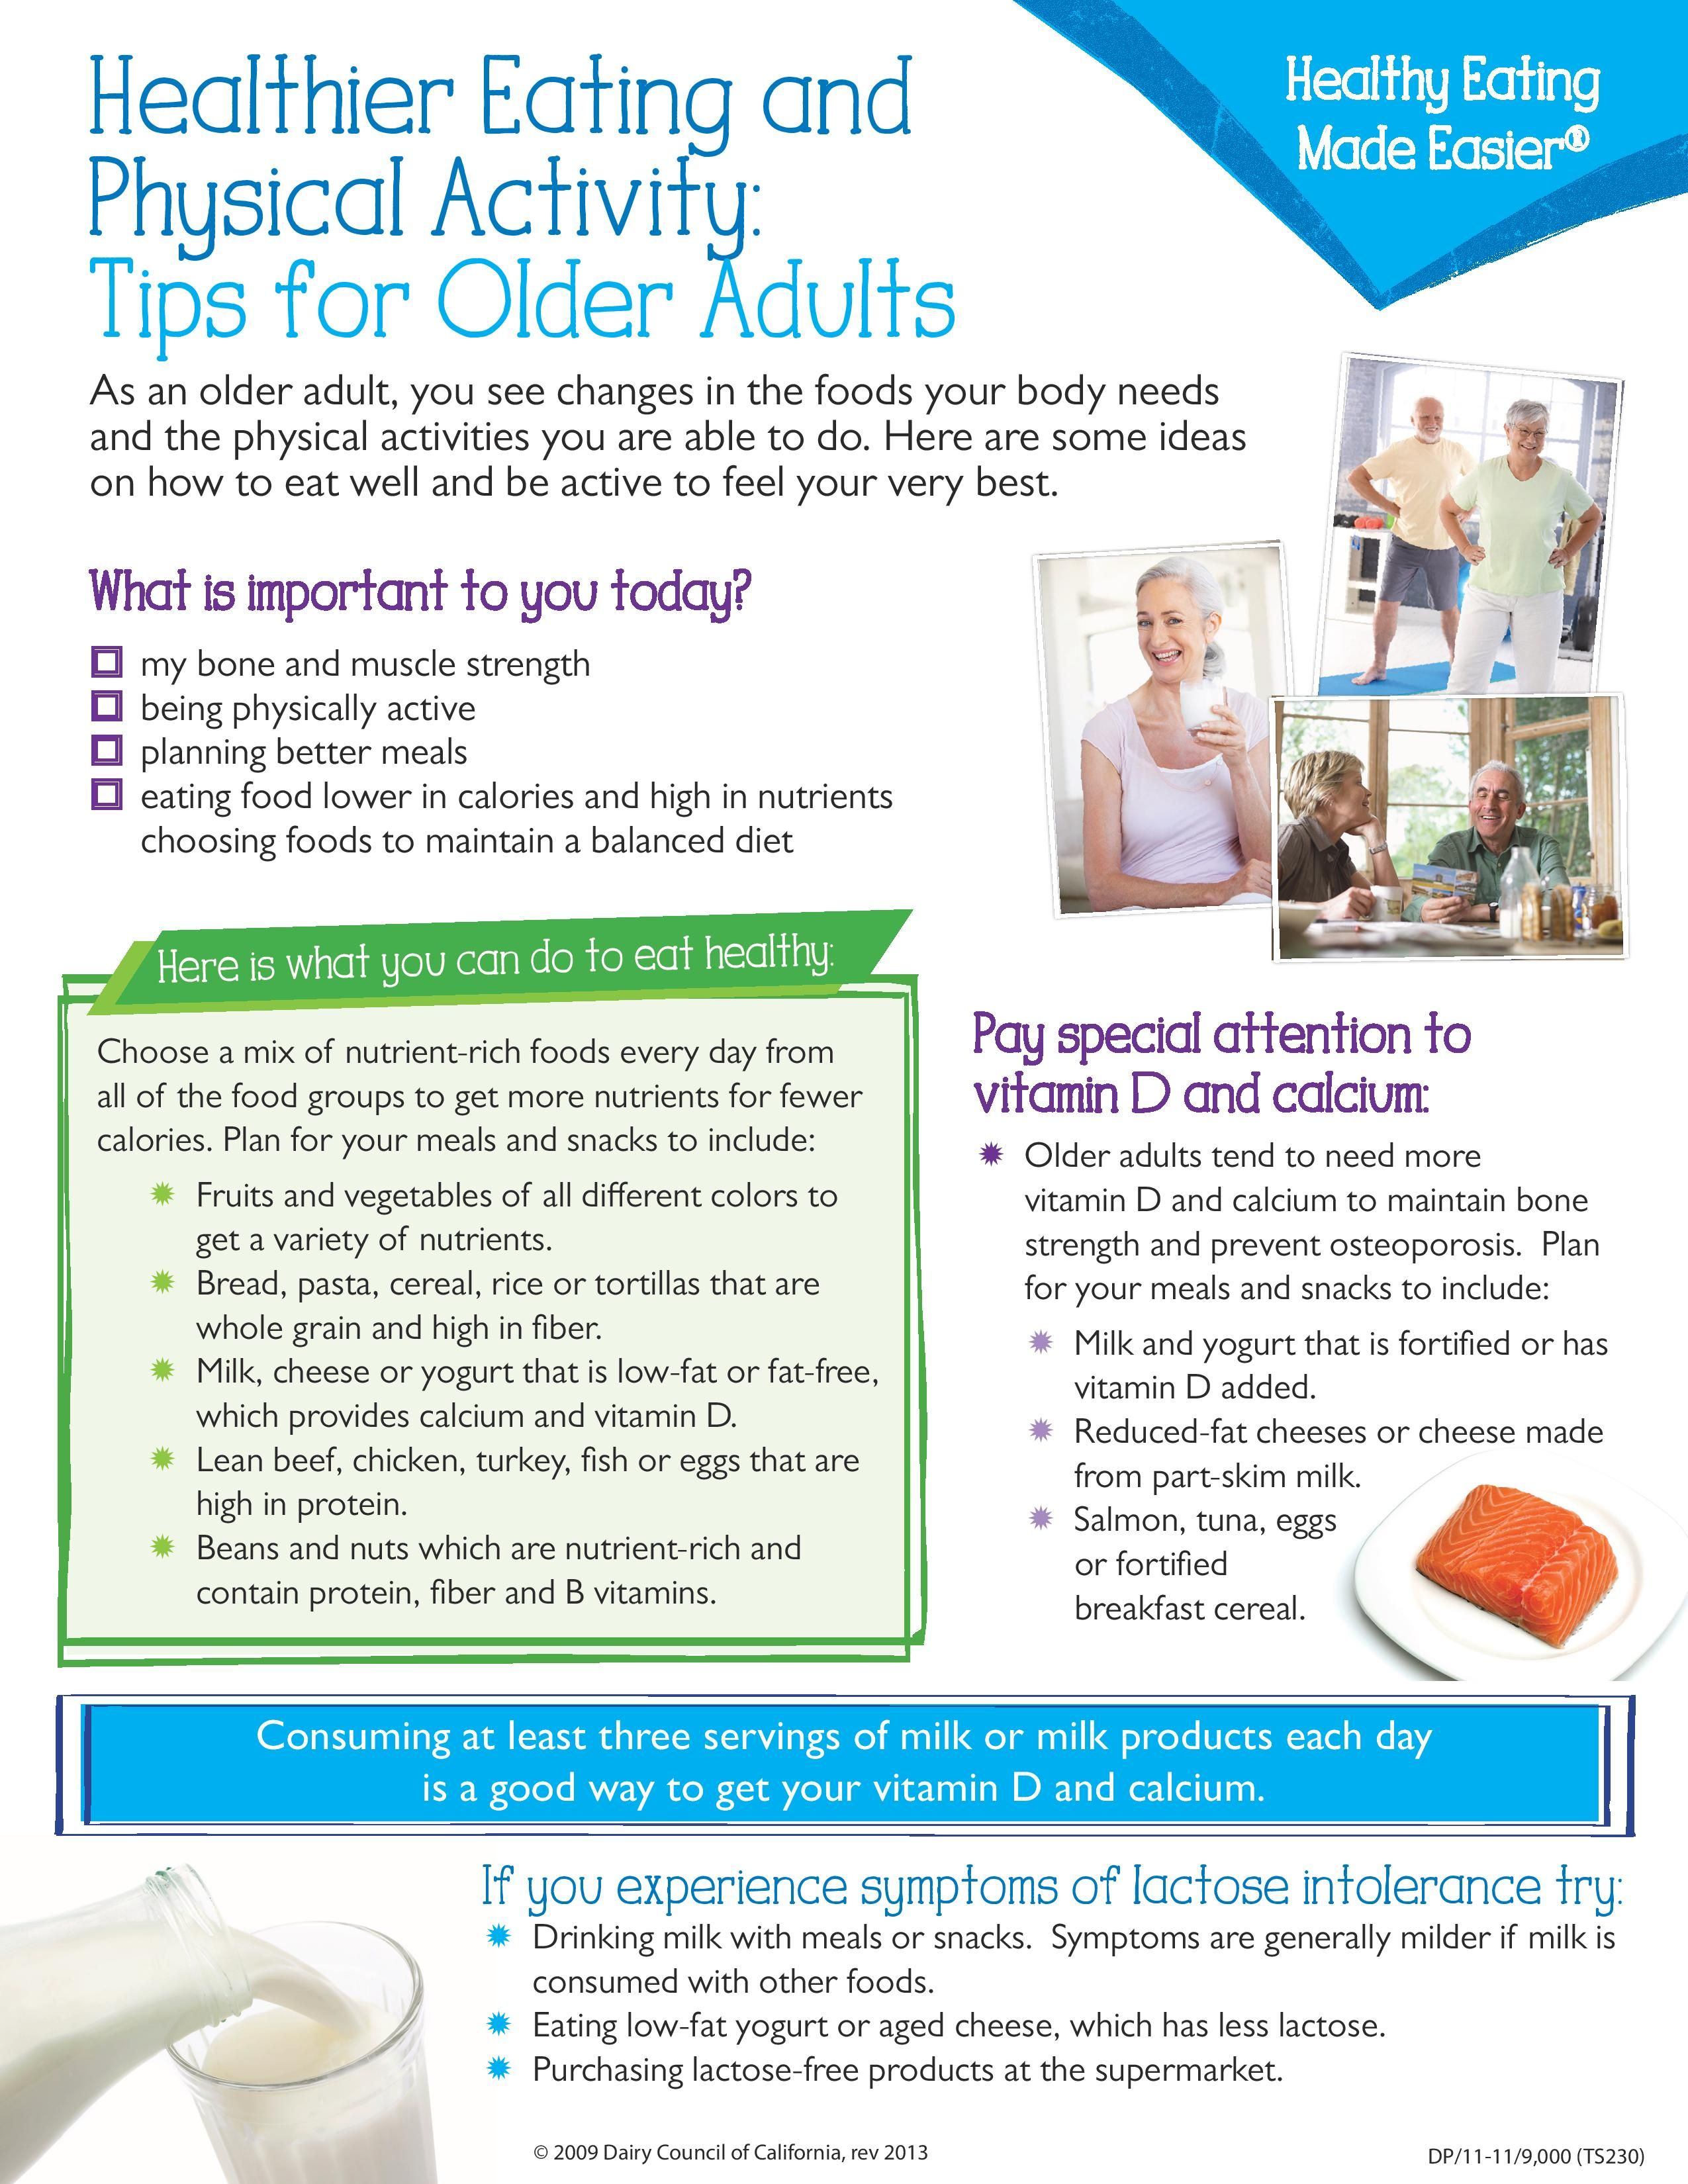 Healthier Eating And Physical Activity Tips For Older